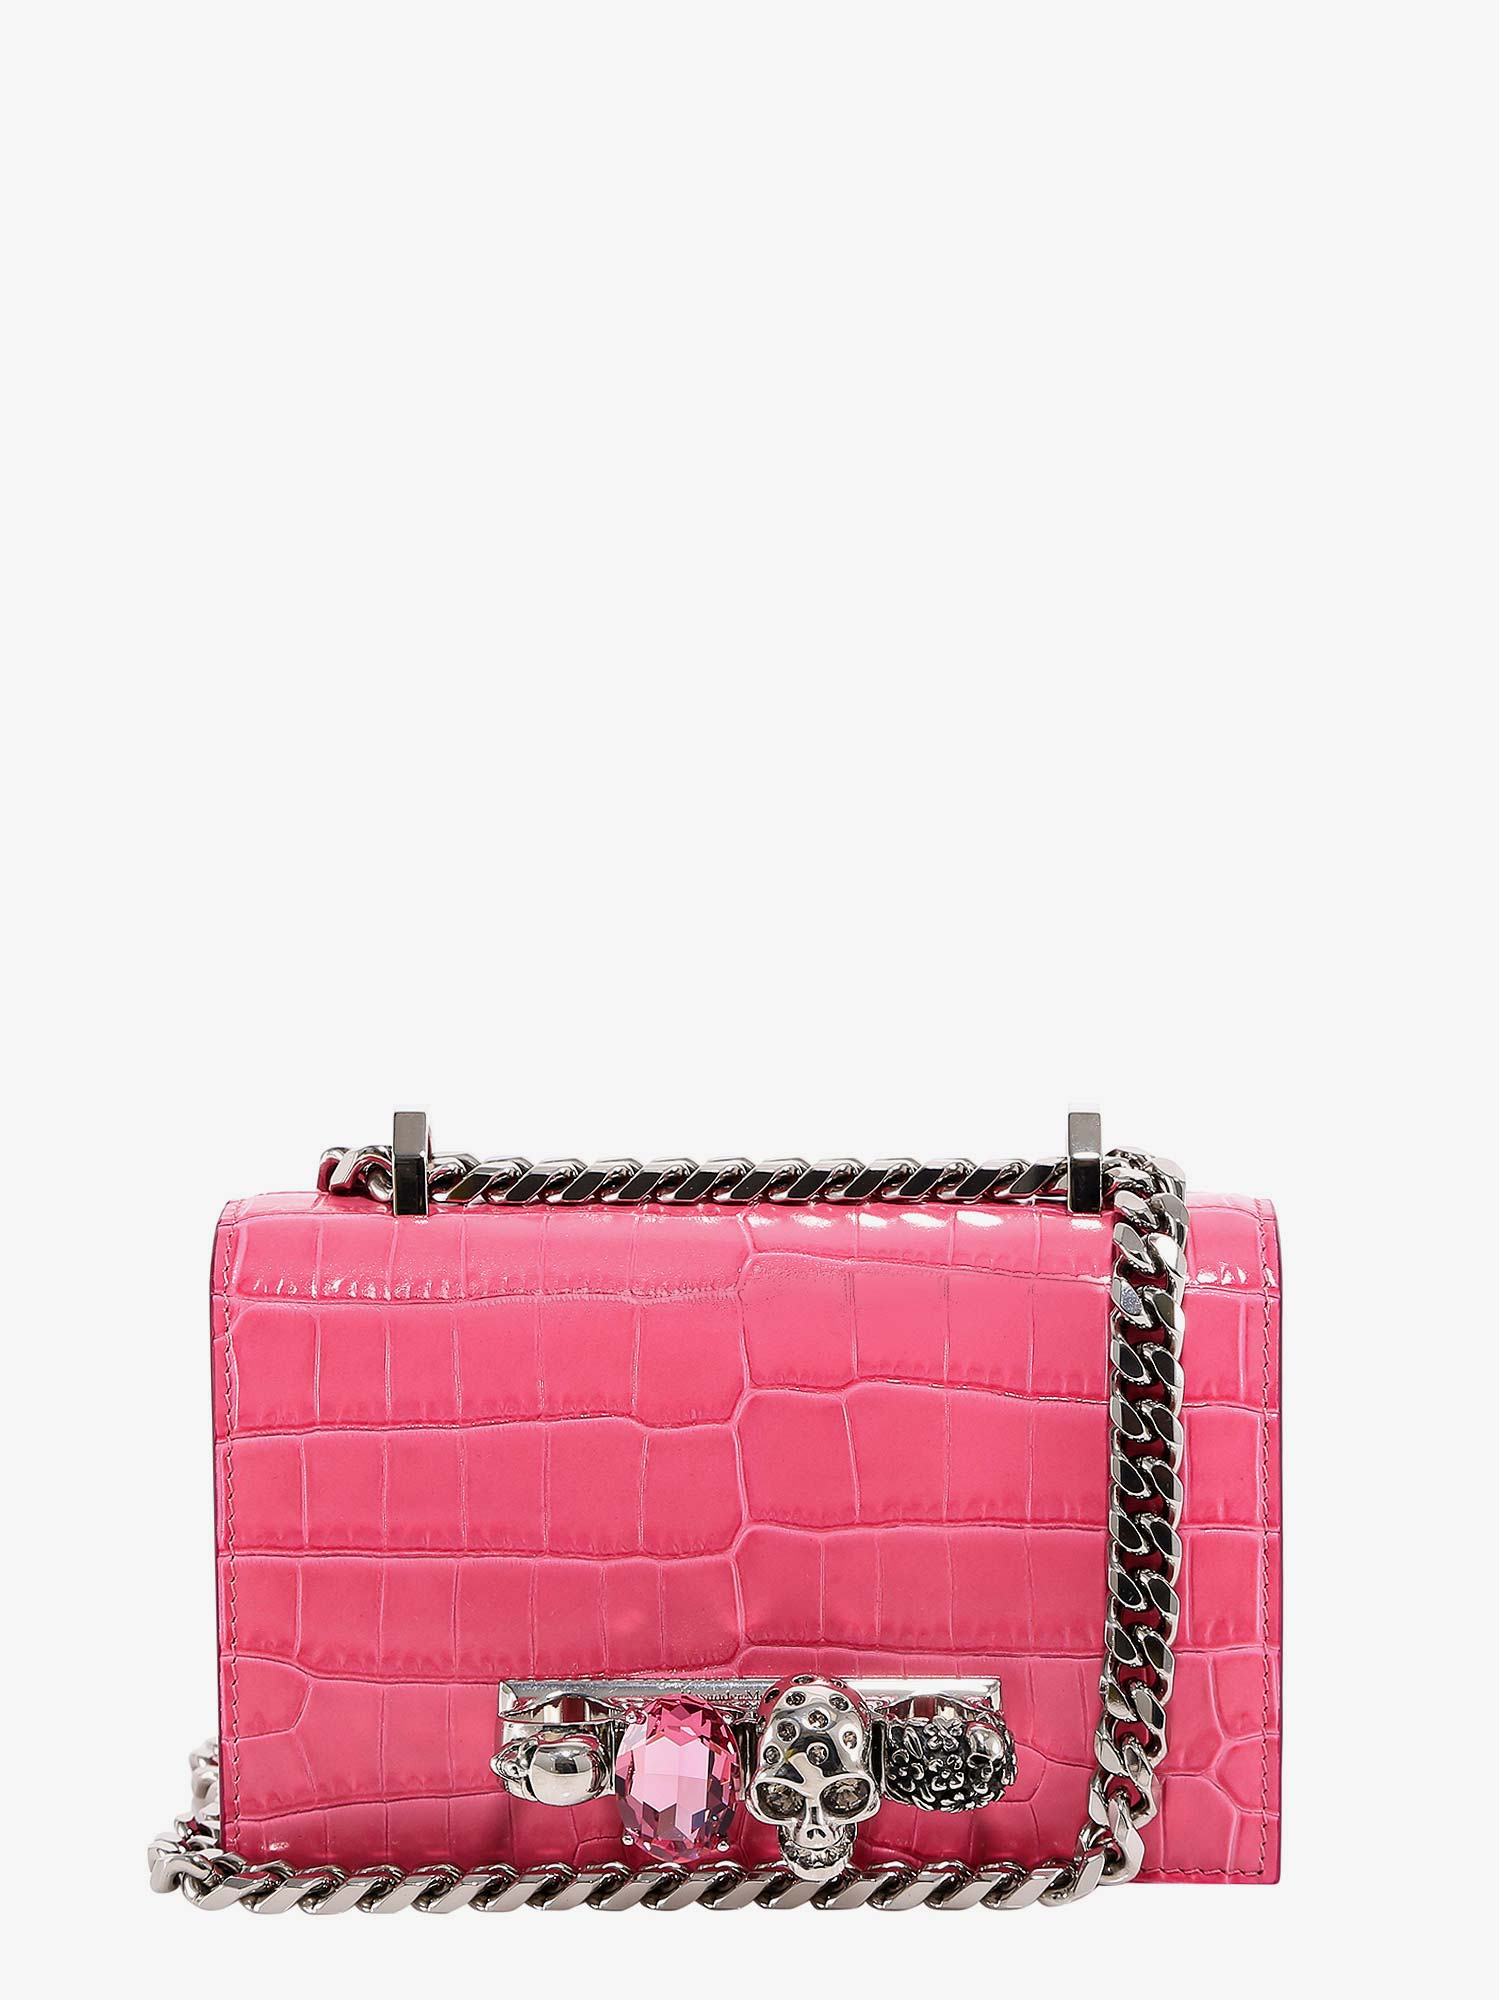 JEWELLED SATCHEL